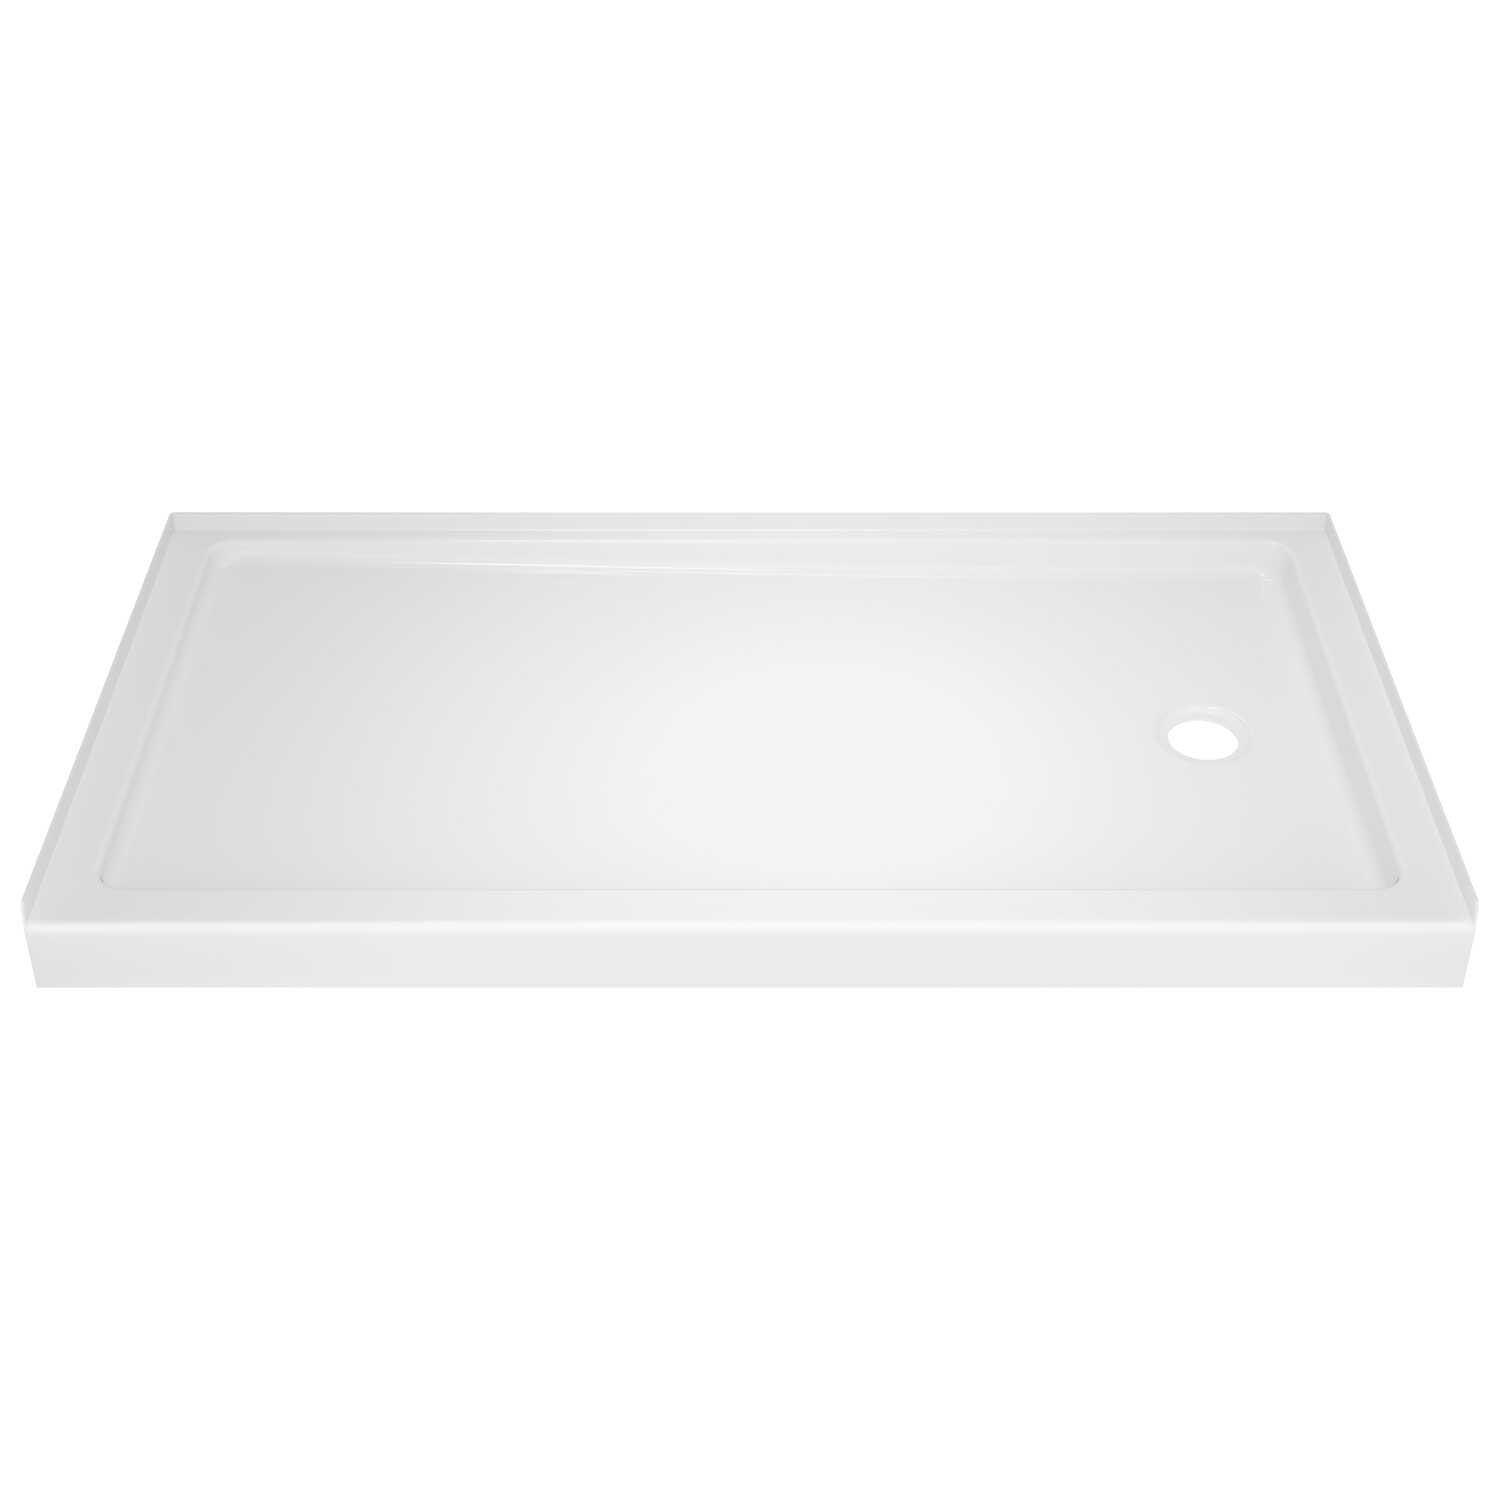 Delta Bathing System  Classic  Acrylic  Right Hand Drain  Rectangle  Shower Base